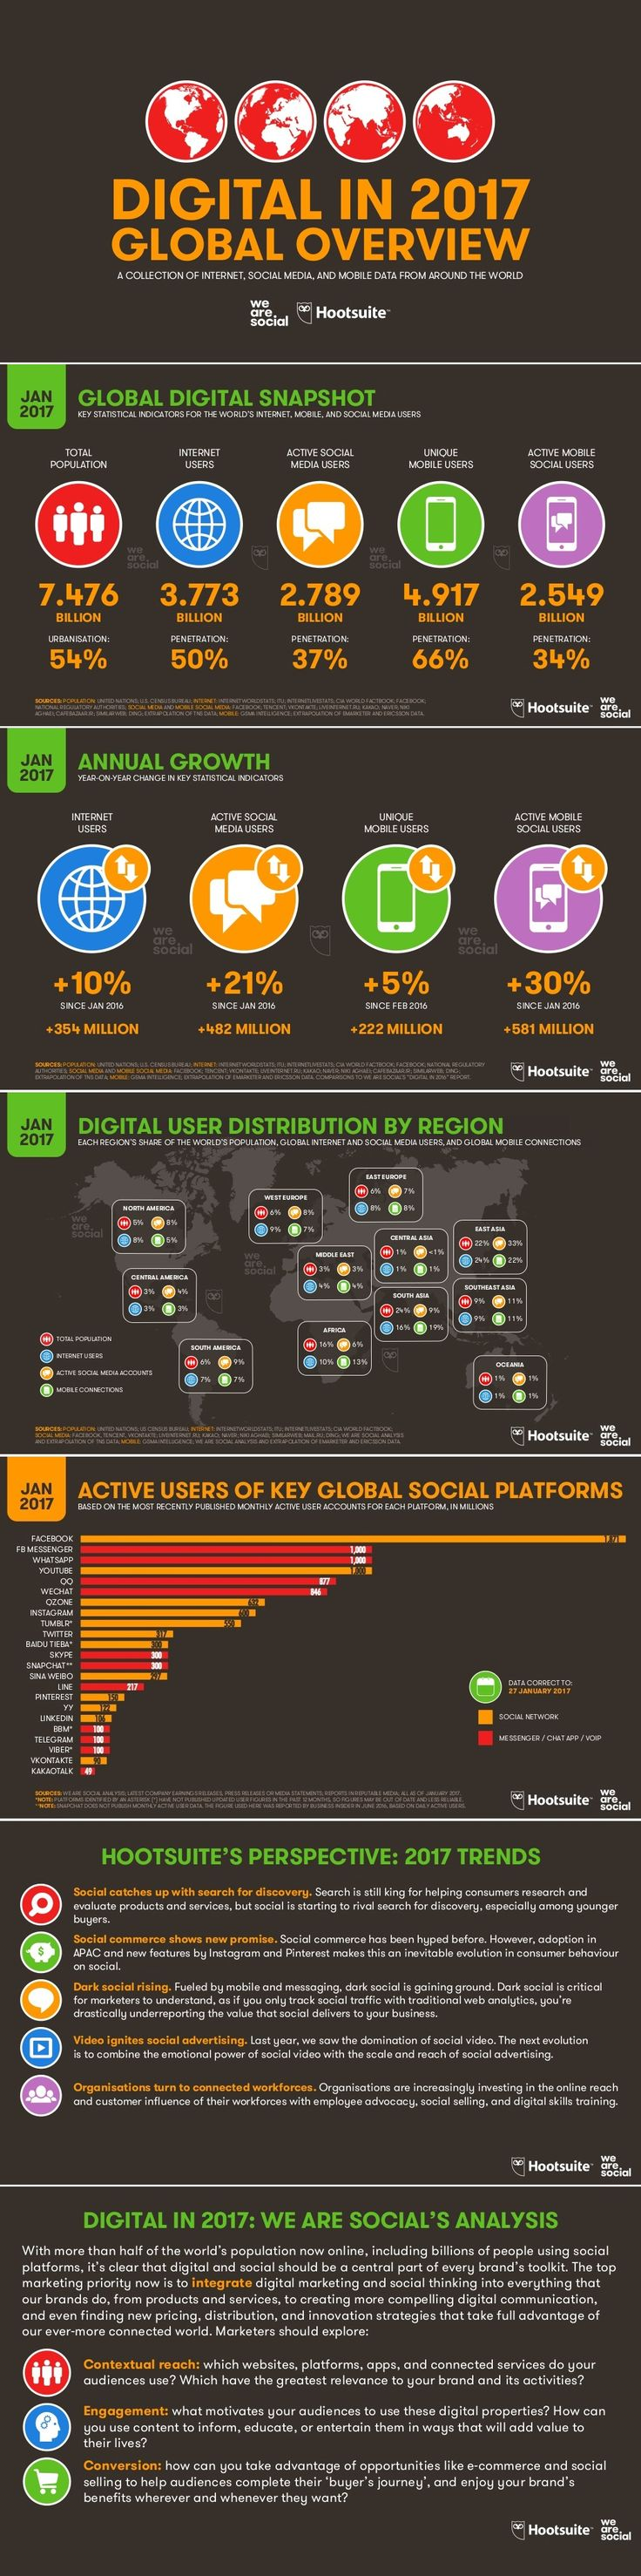 "SOCIAL MEDIA - ""Digital in 2017 - Global Overview""."